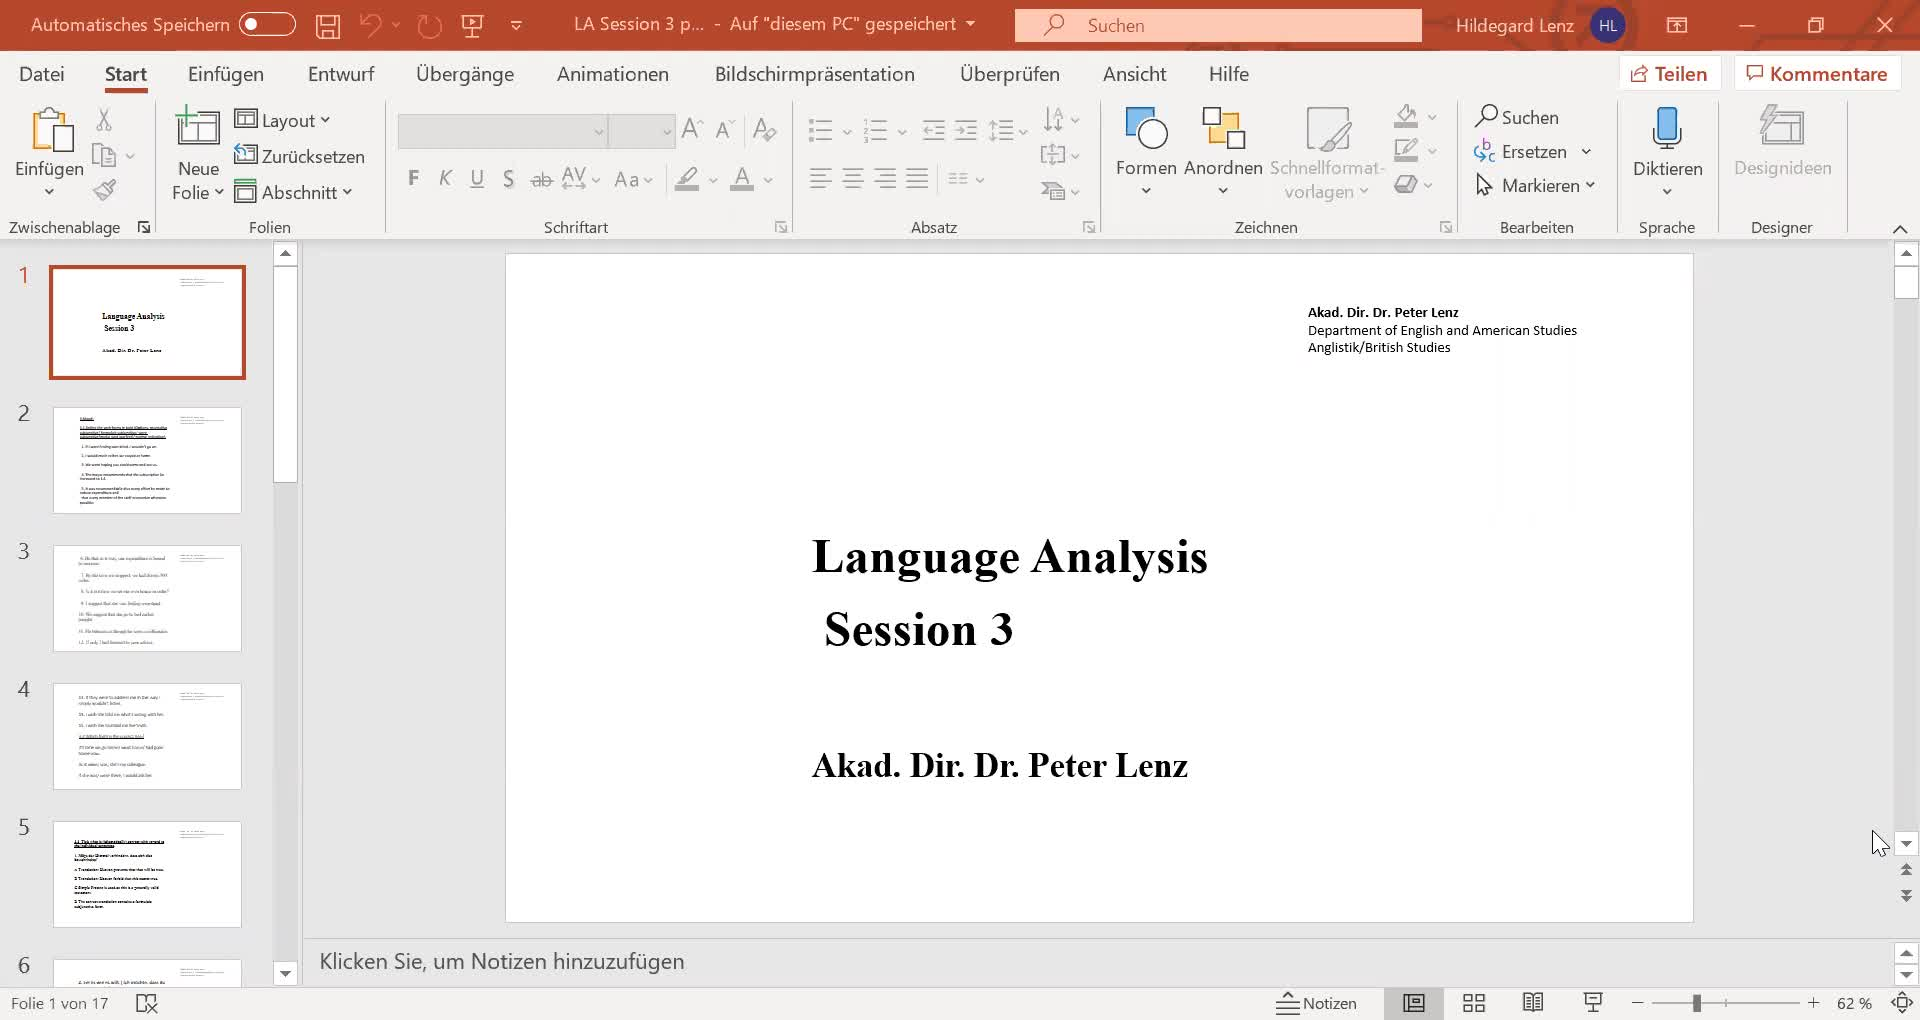 Language Analysis Session 3